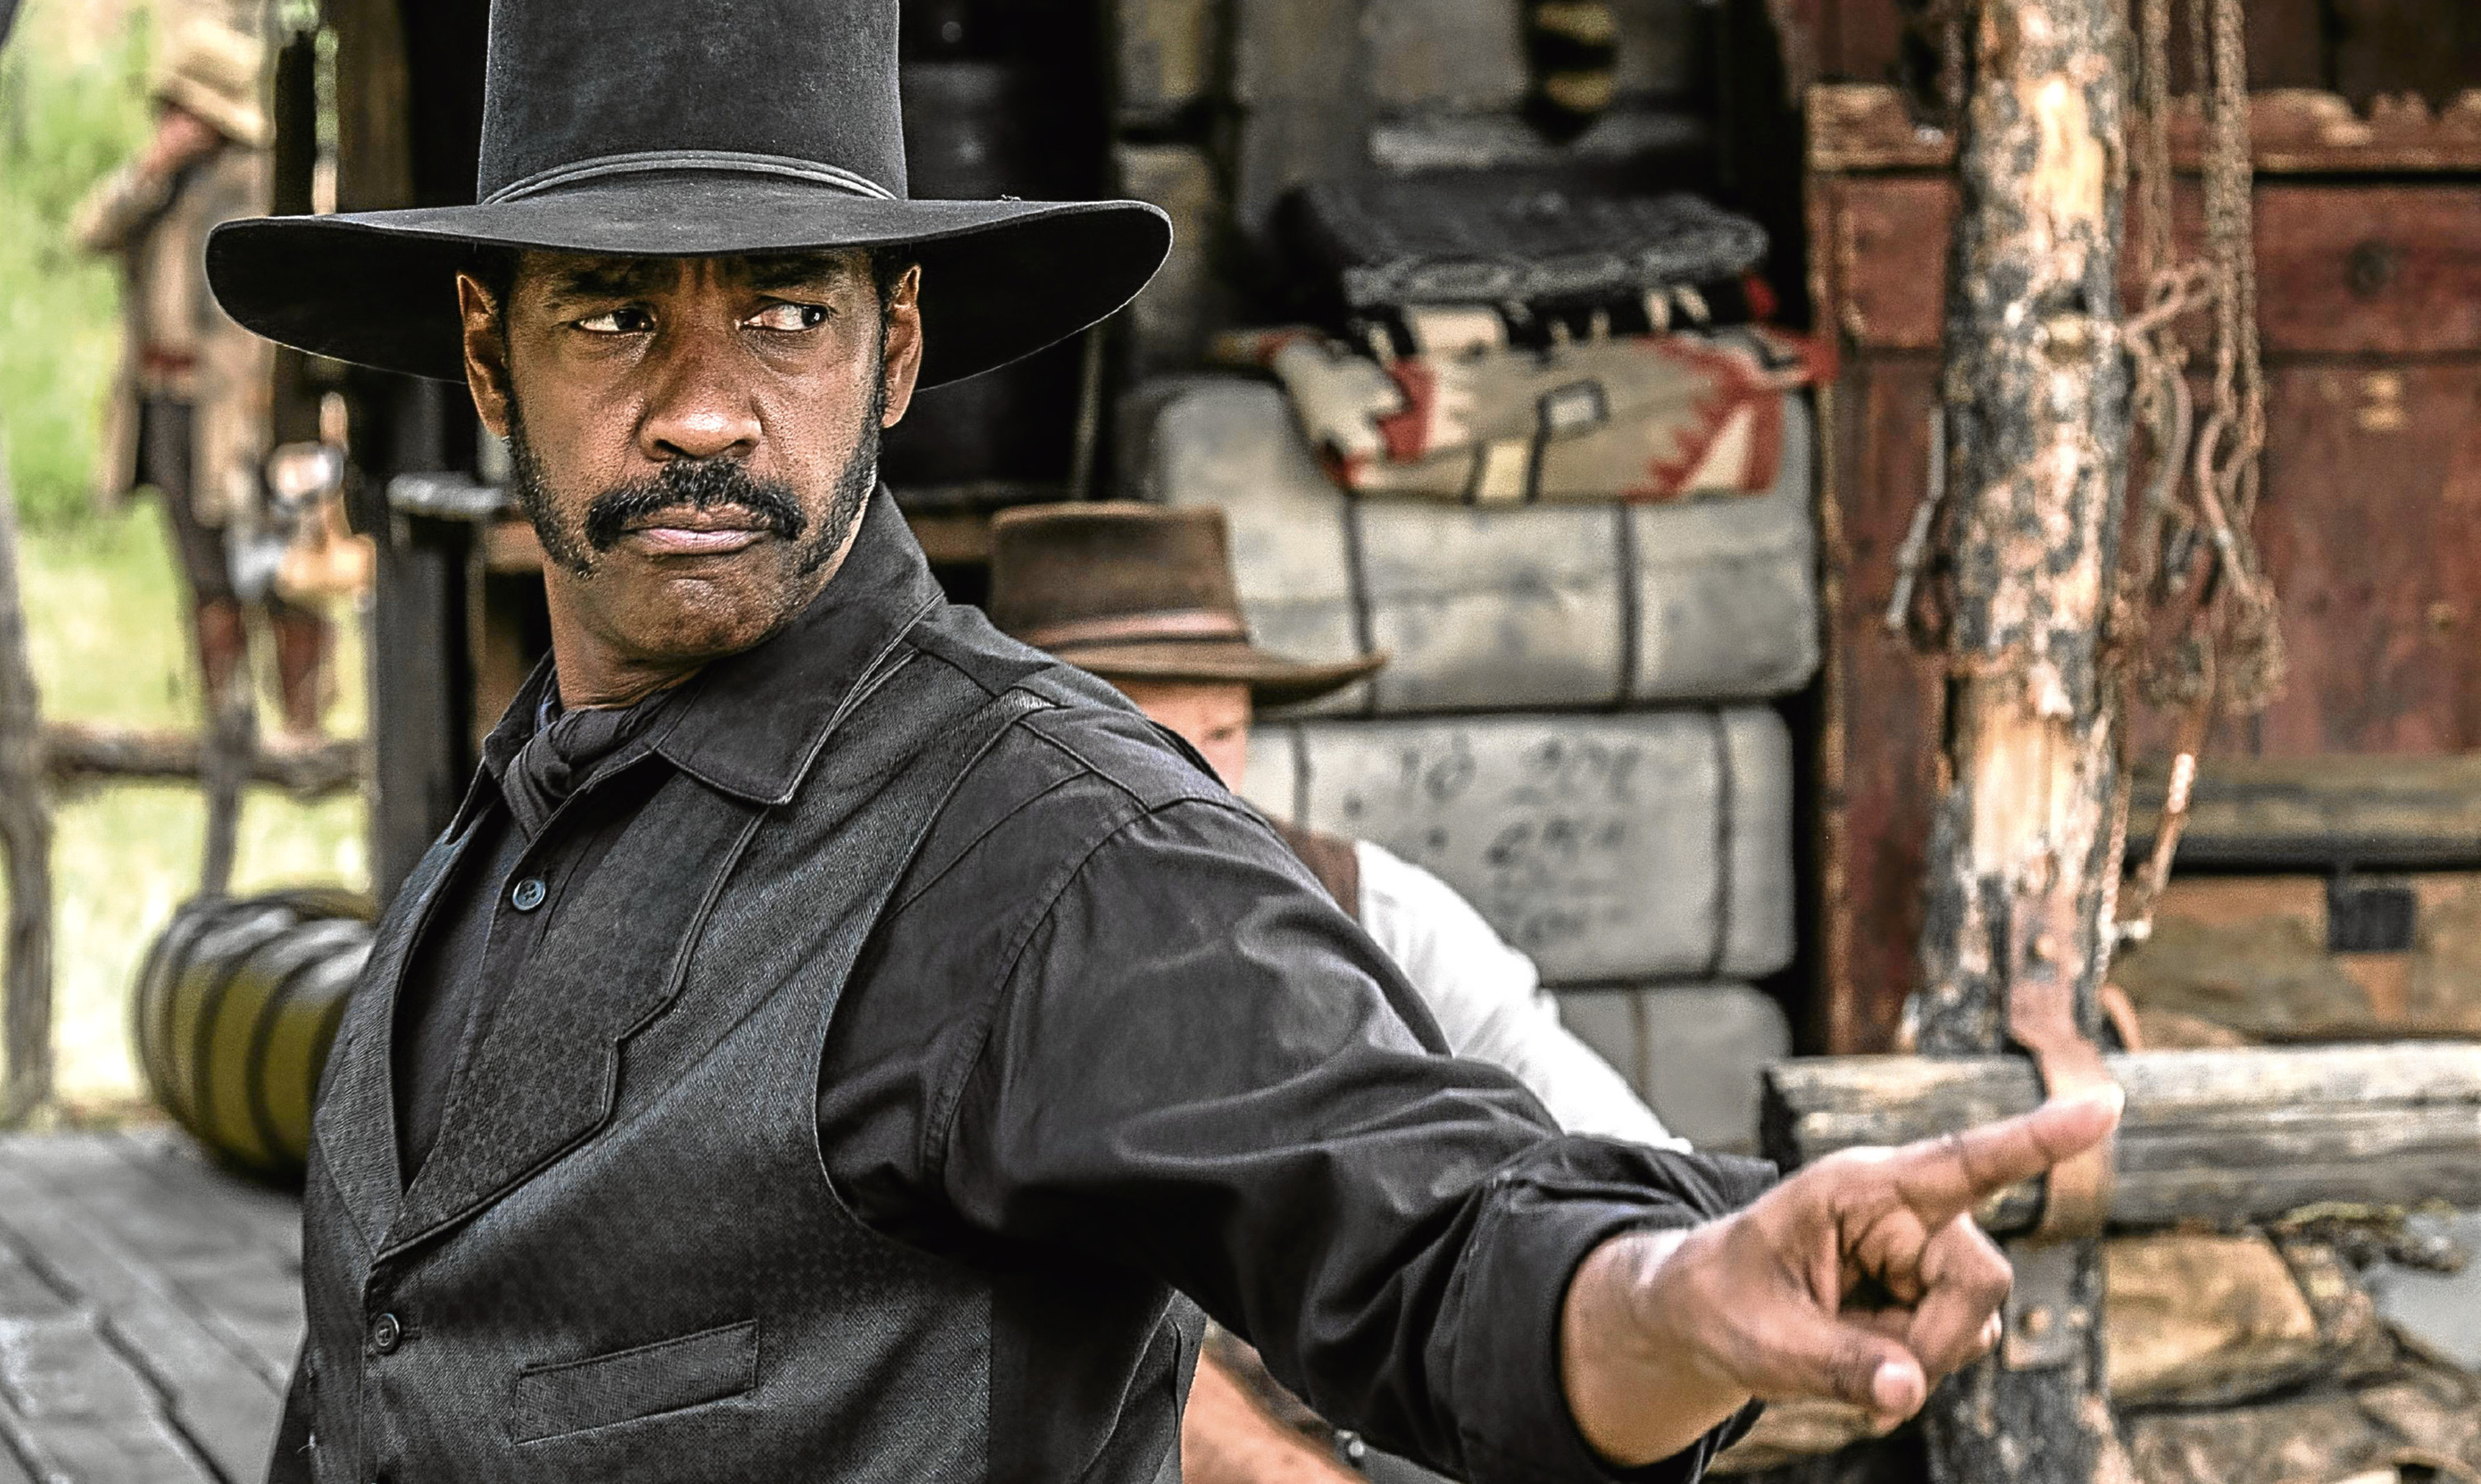 Denzel Washington in the remake of the Magnificent Seven, which has infuriated Jim, an ardent fan of the original.